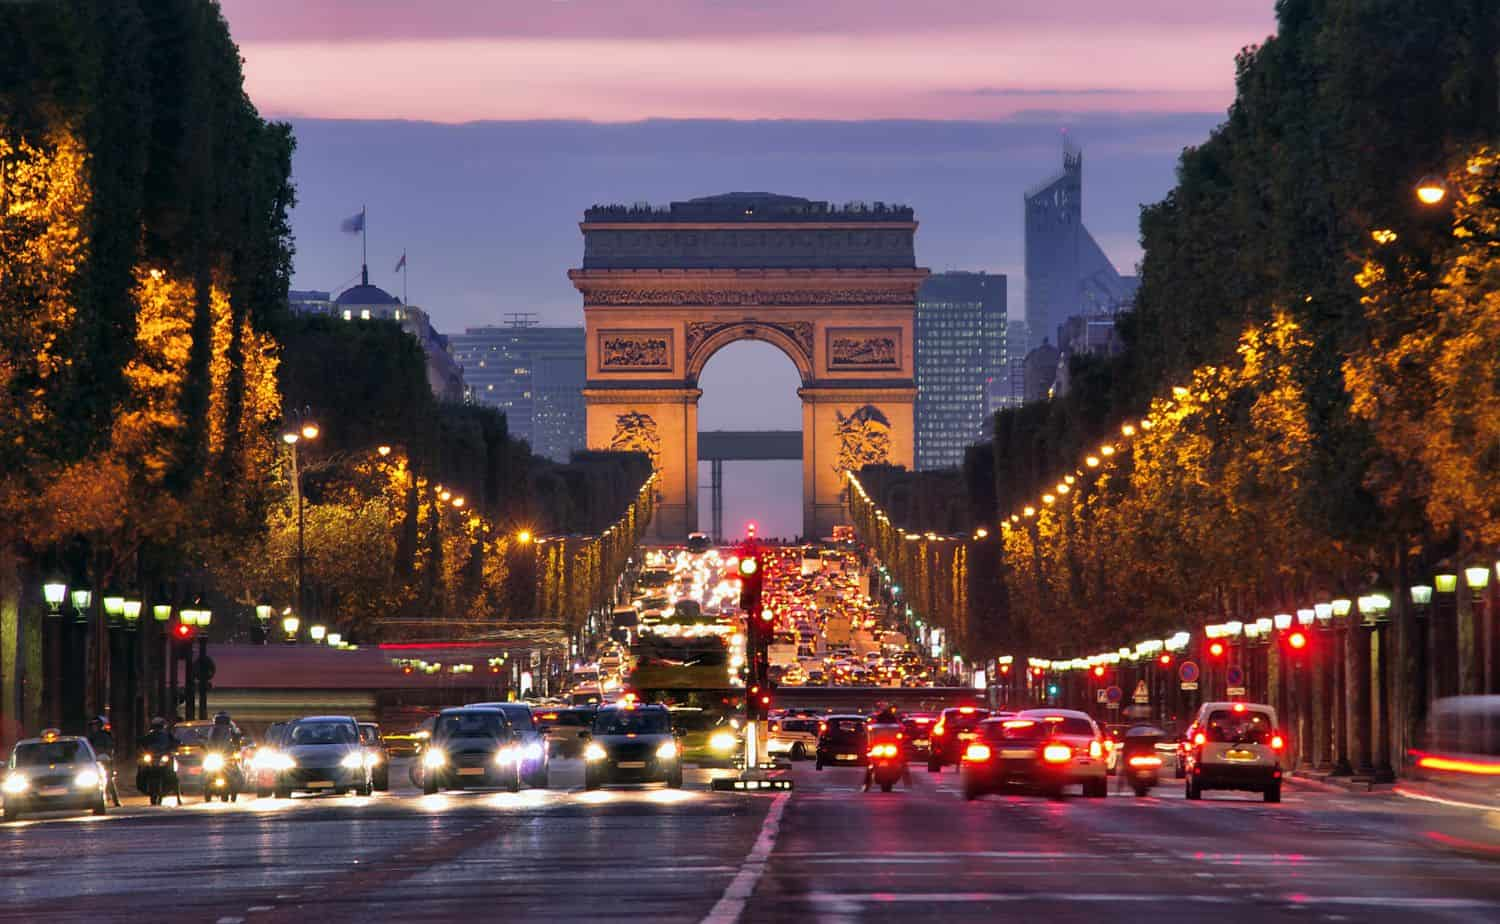 Paris Ratgeber volles Paris am Champs-Elysees